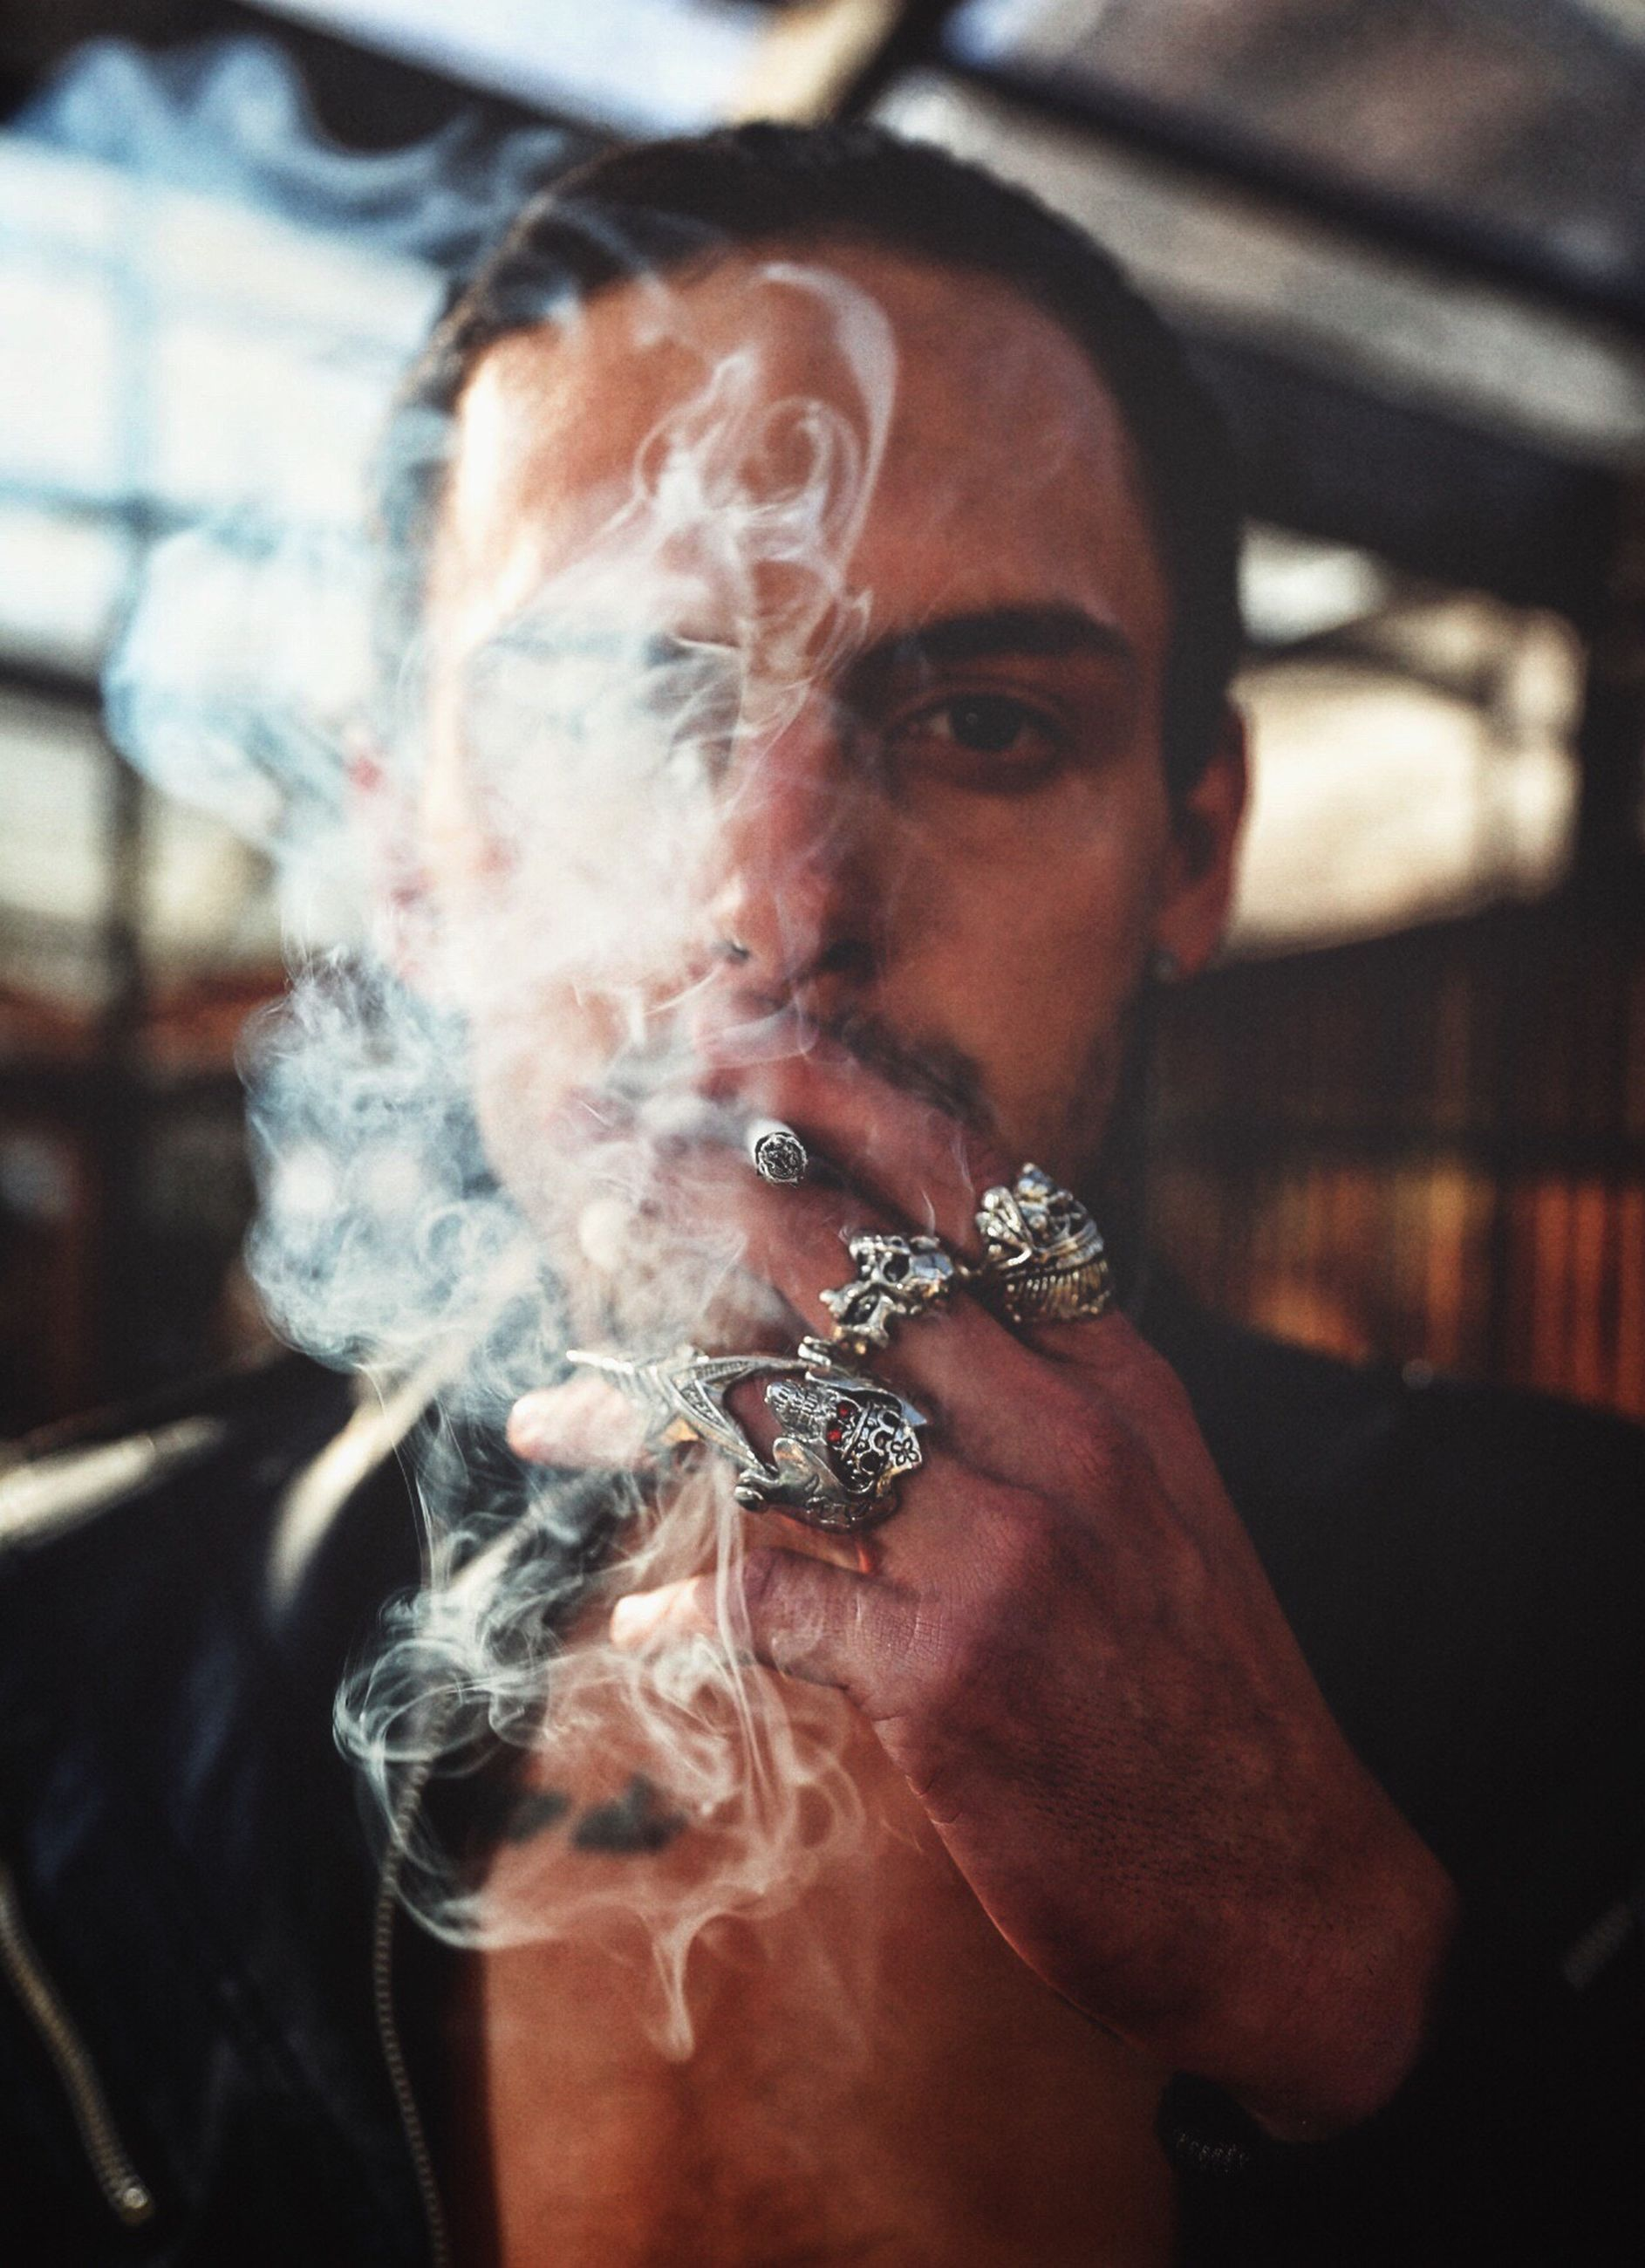 smoking - activity, smoking issues, lifestyles, real people, smoke - physical structure, bad habit, one person, leisure activity, only men, adults only, headshot, men, one man only, adult, day, people, portrait, outdoors, close-up